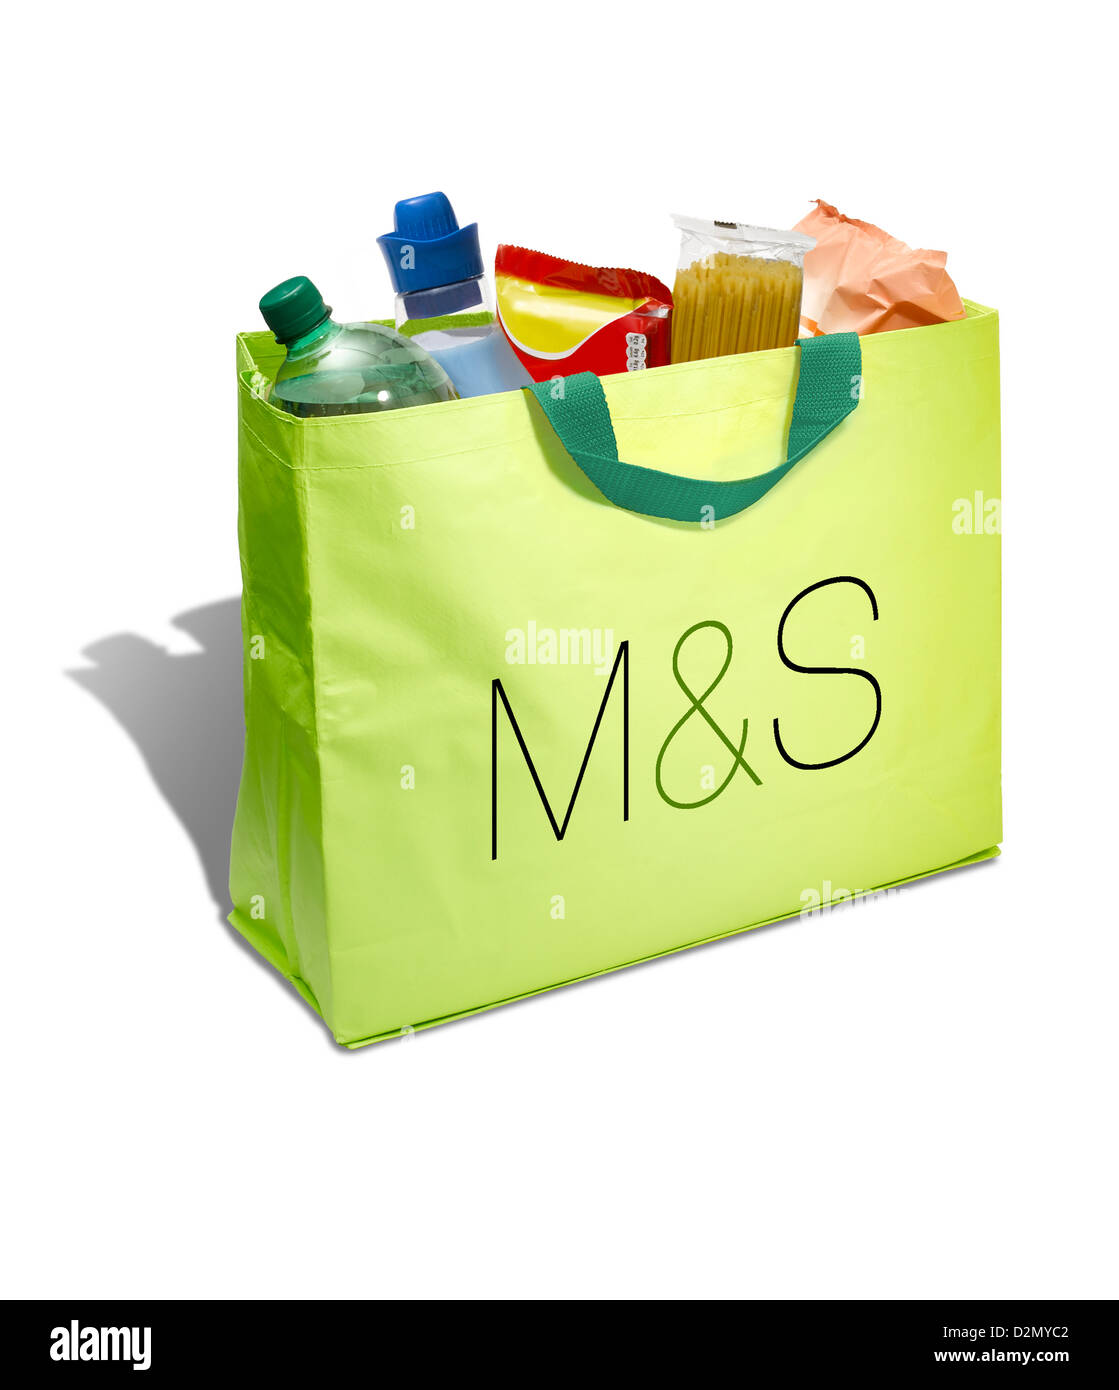 431bb872cb73 A lime green Marks and Spencer shopping bag on a white background - Stock  Image